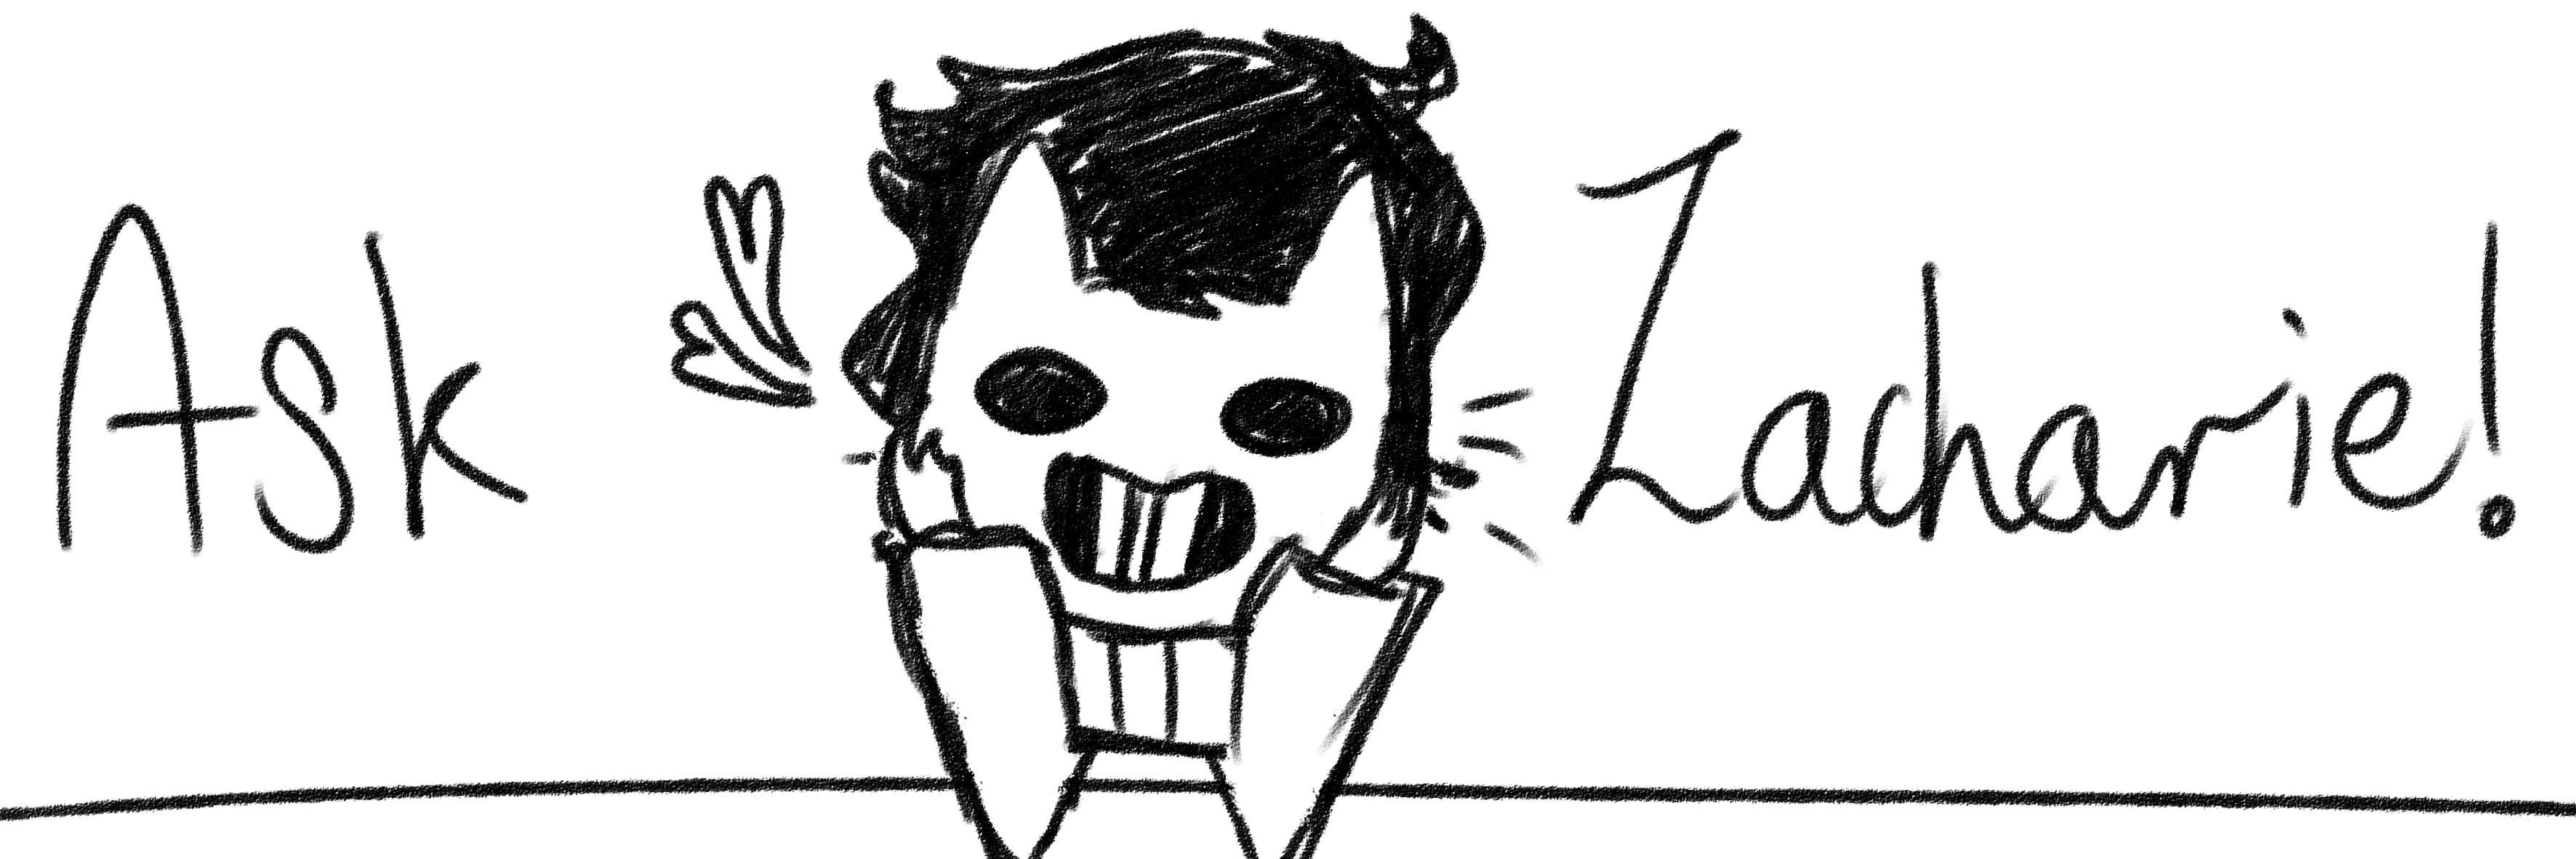 Ask Zacharie!